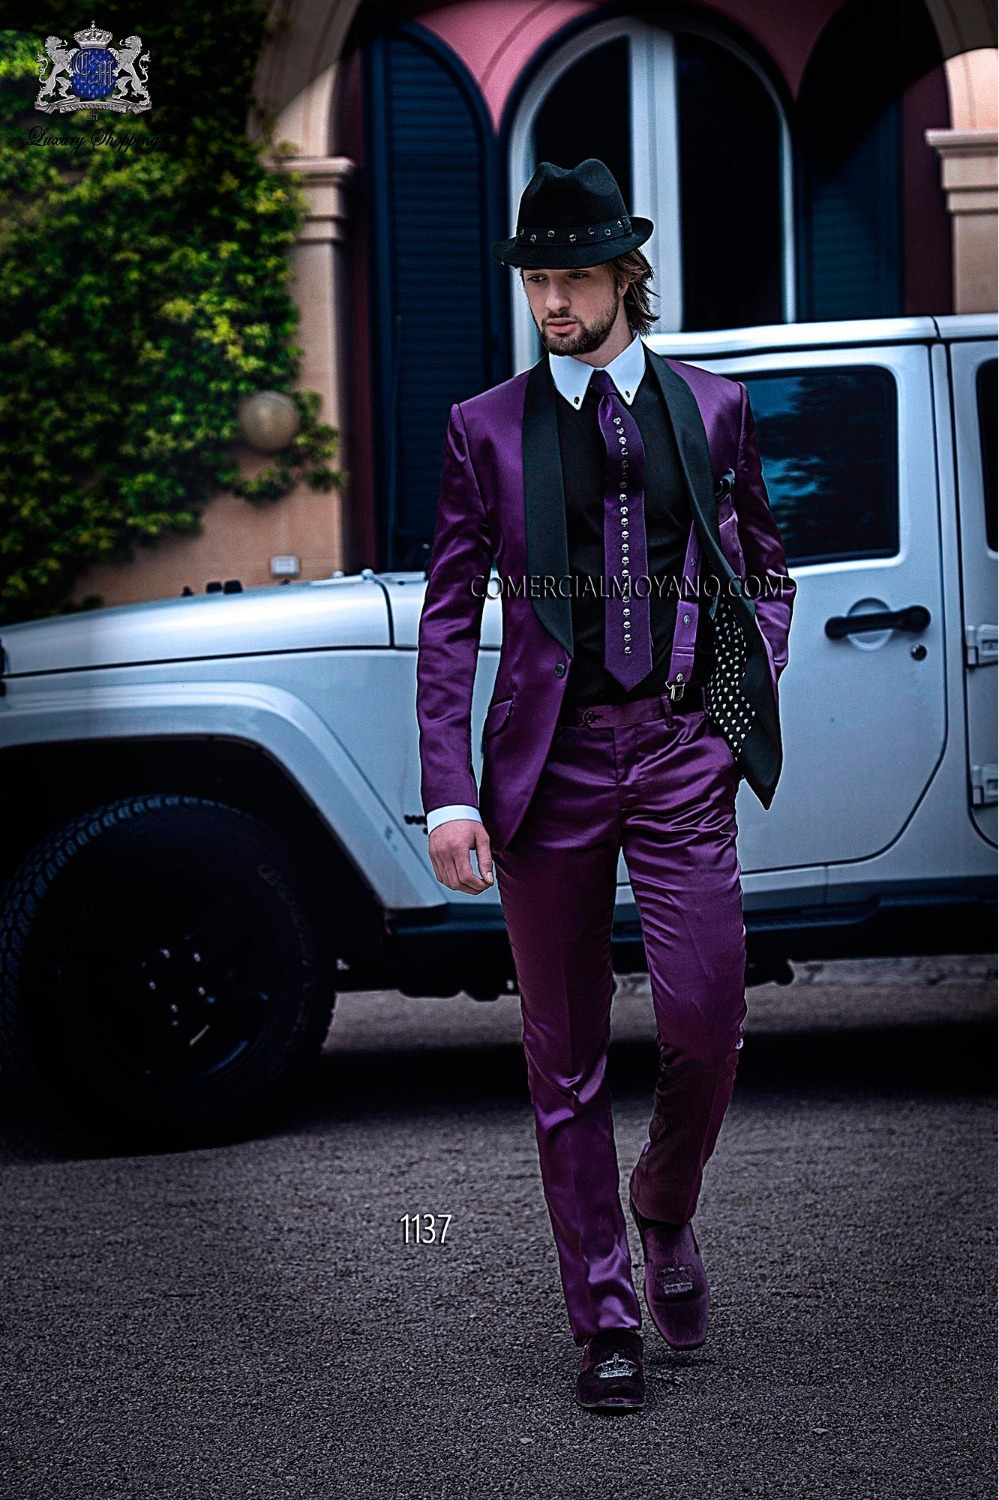 2017 New Arrival Men Blazer Business Men Prom Party Suits Purple Jacket With Pants Wedding Suits For Men Tuxedos Groom Suit